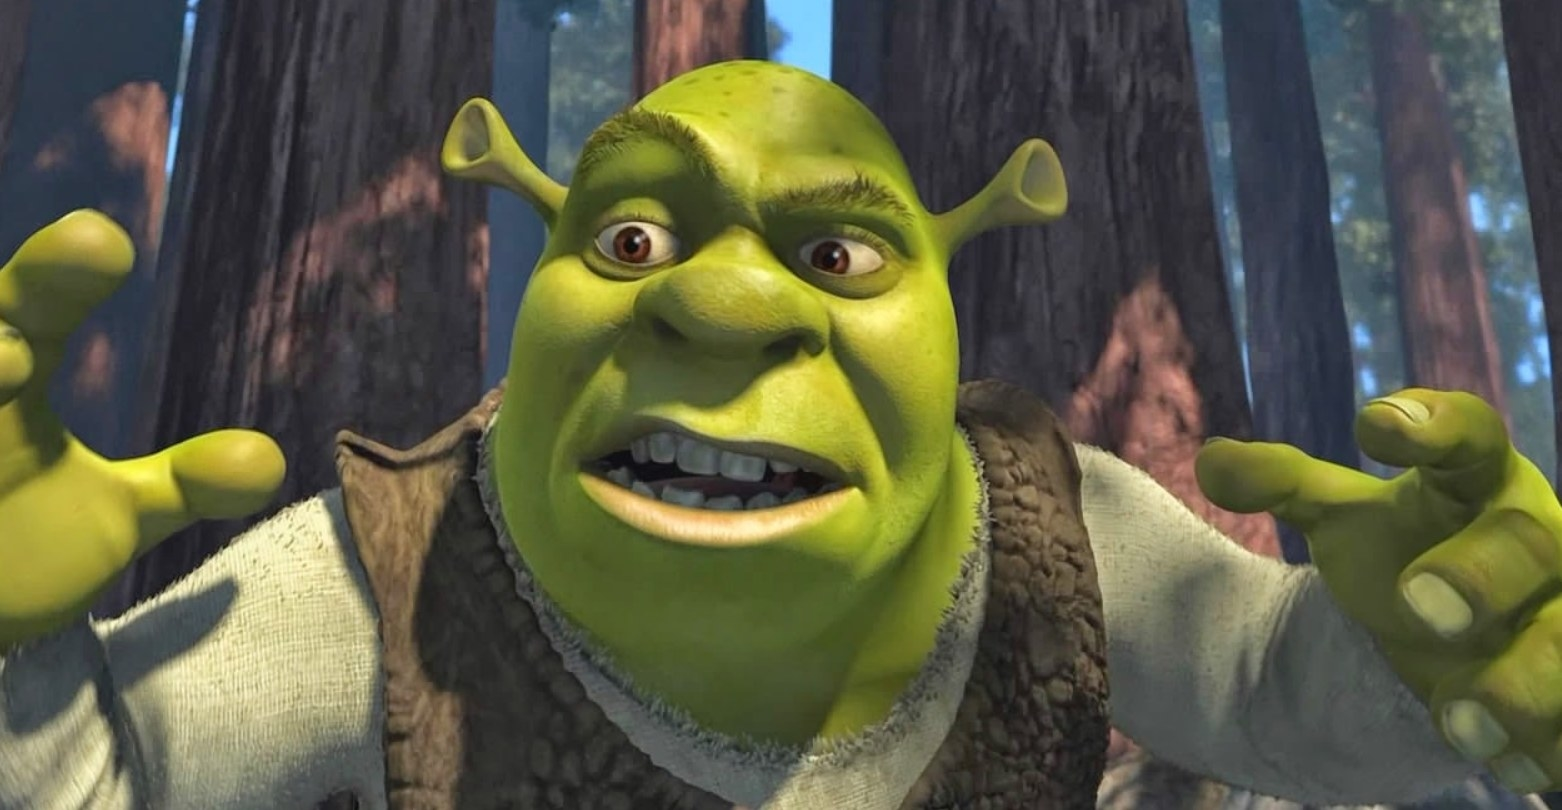 Shrek stands in the woods and gestures while talking